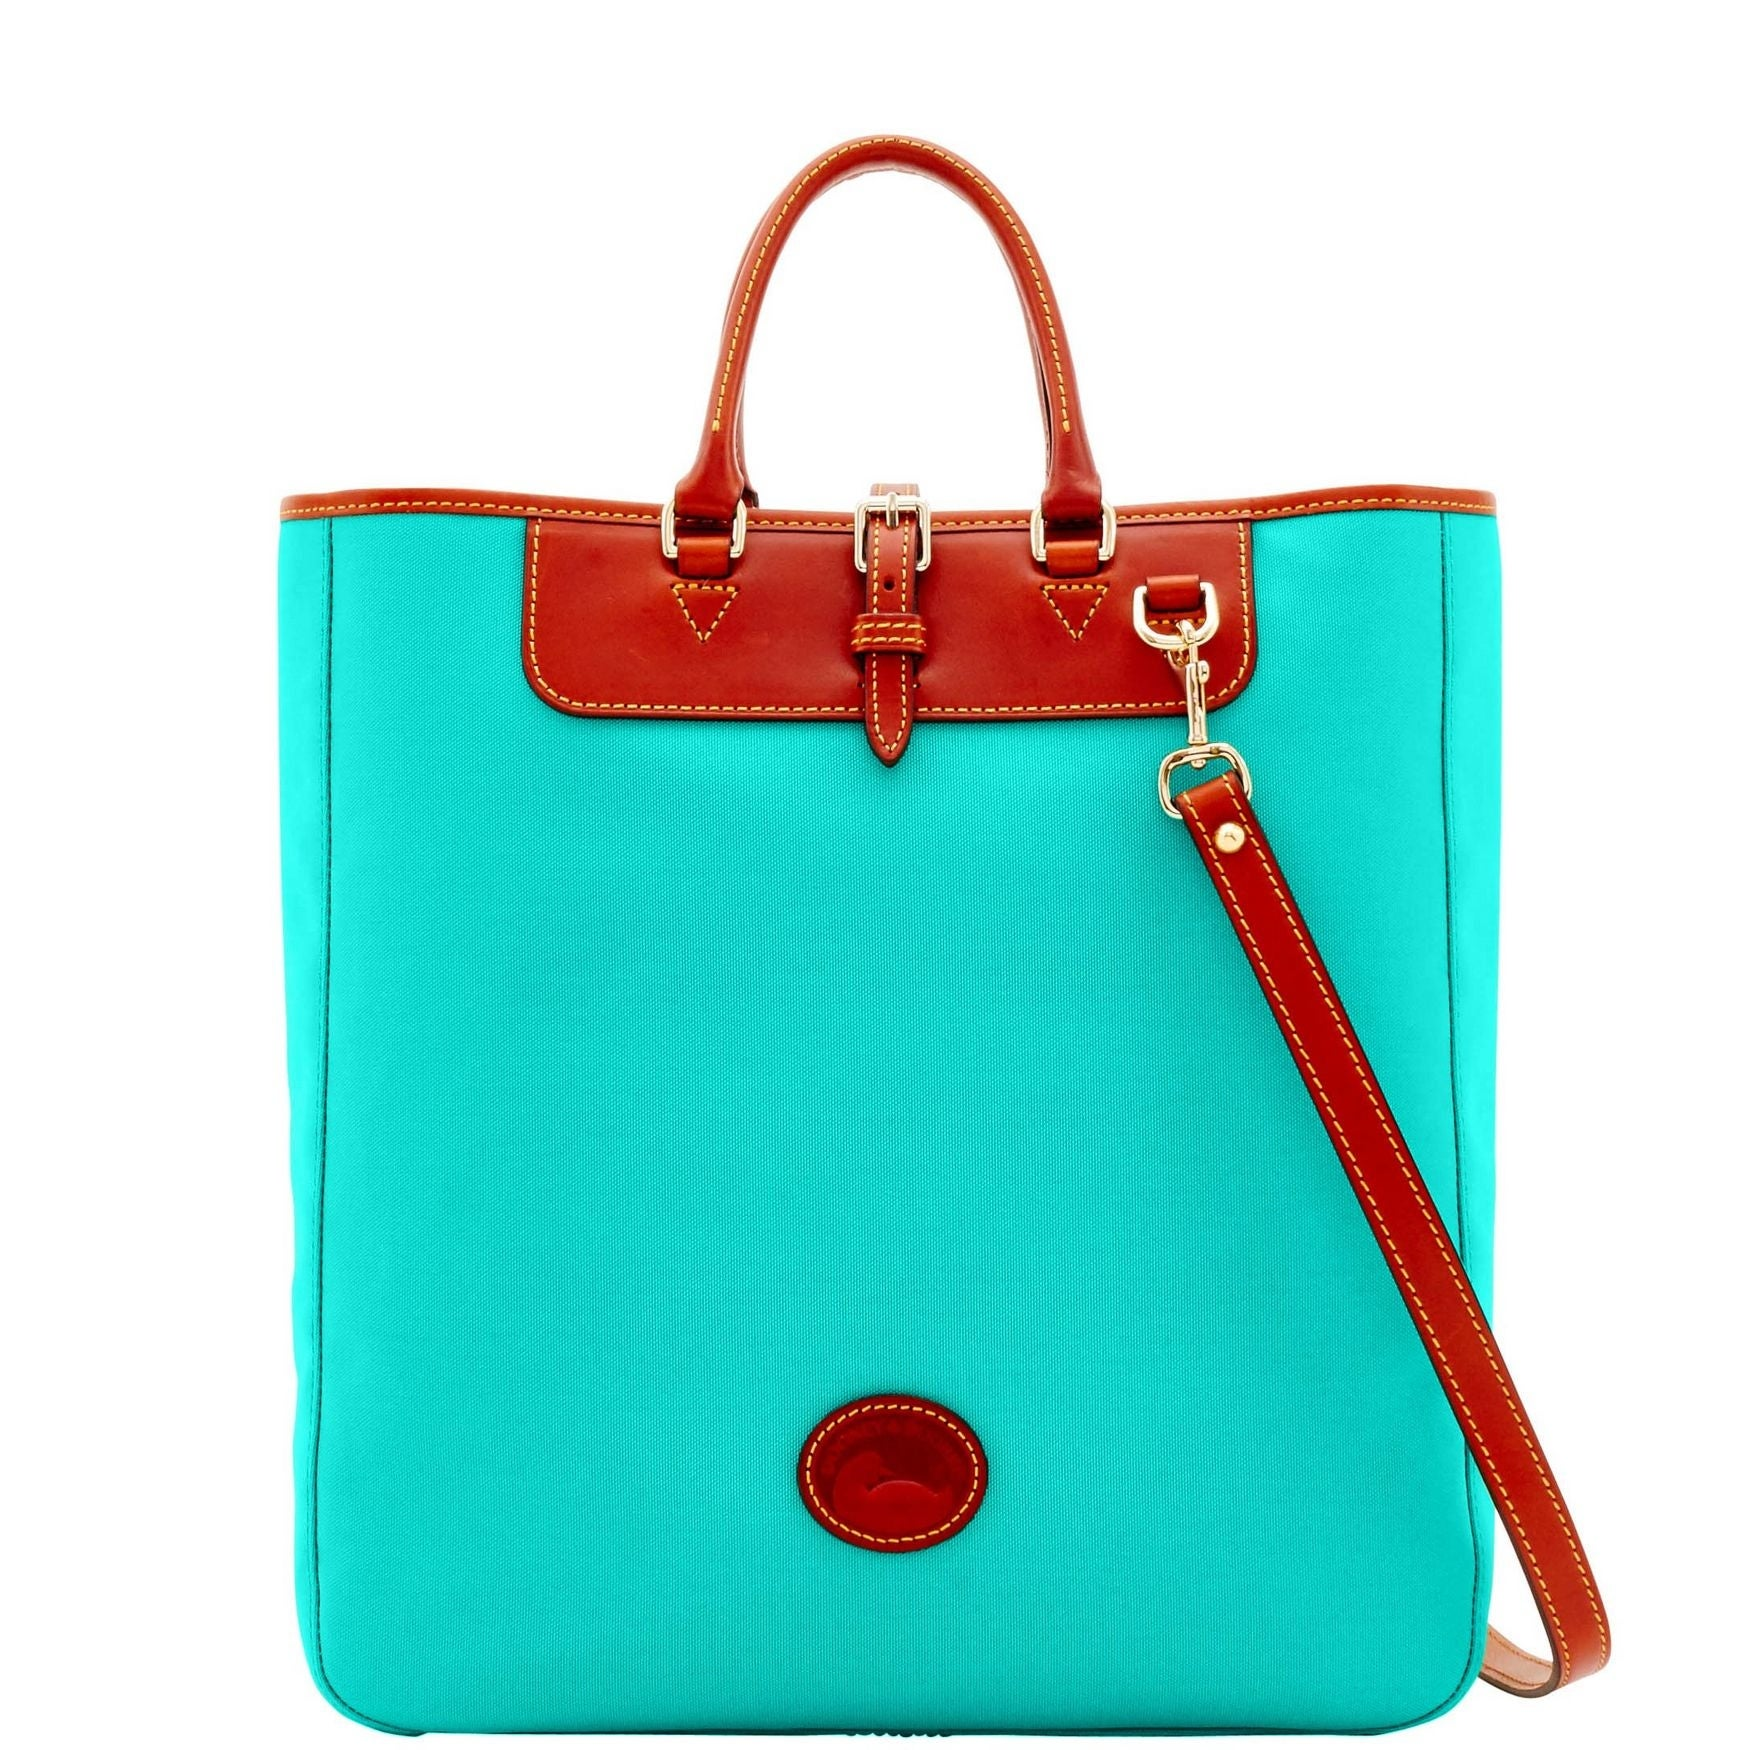 94b69dc575a6 Green Dooney & Bourke Handbags | Shop our Best Clothing & Shoes Deals  Online at Overstock